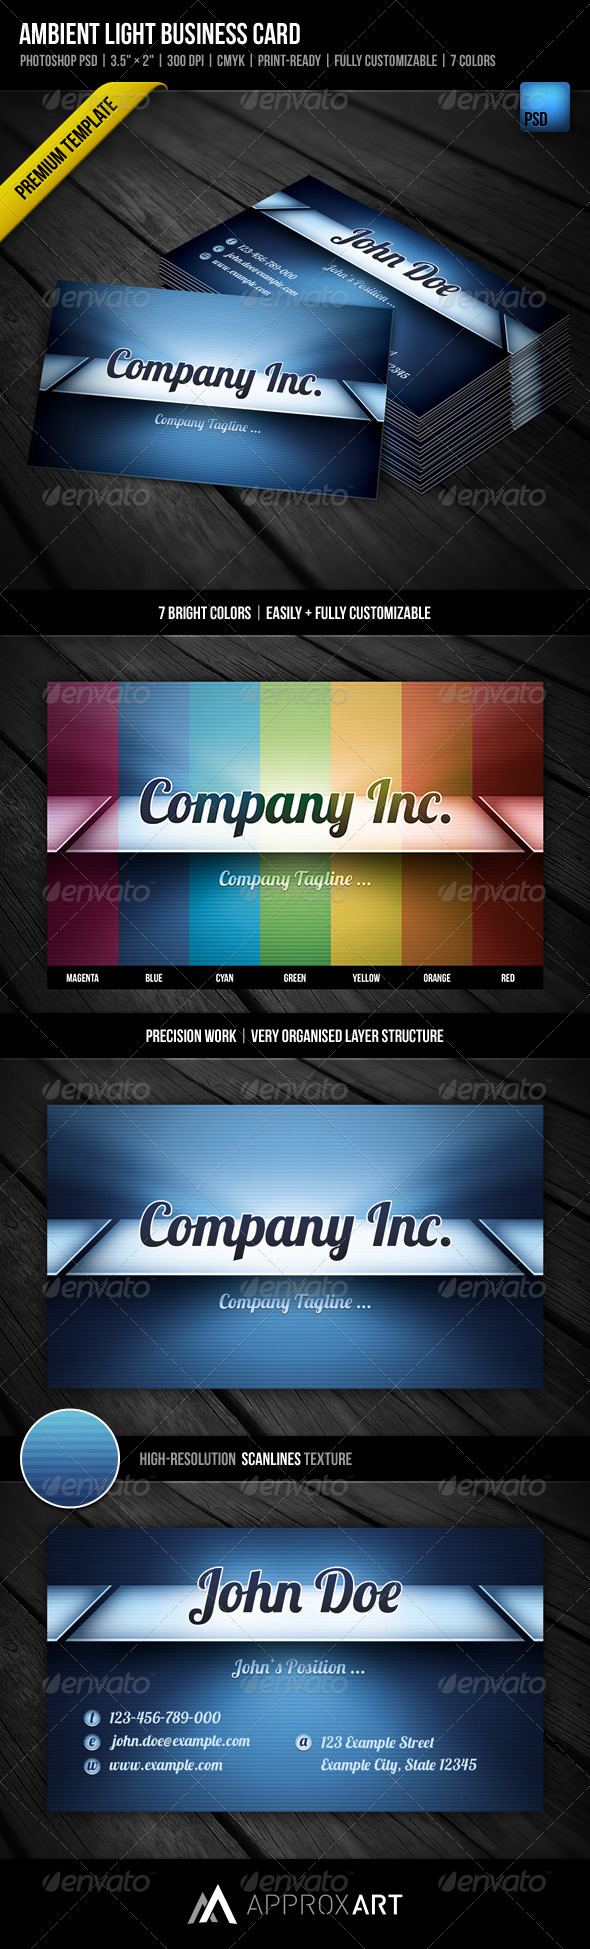 Ambient Light Business Card - Creative Business Cards